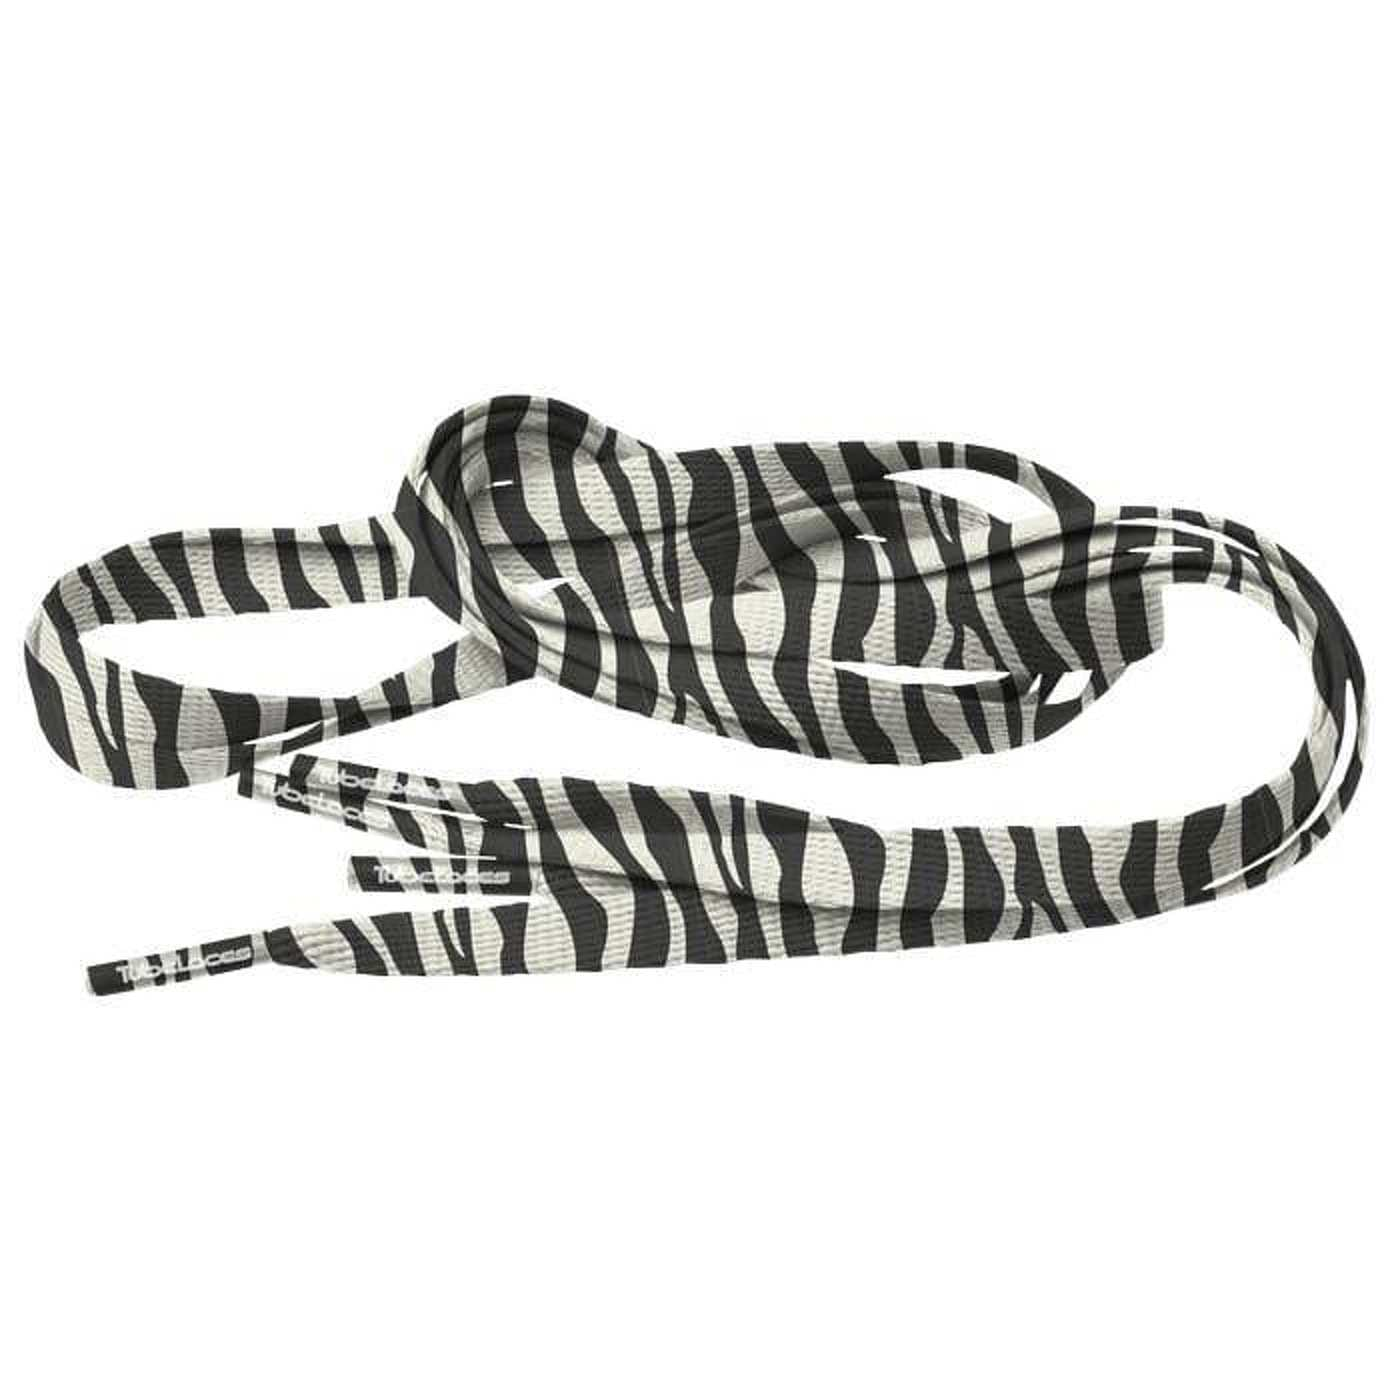 MD Tube Laces Special Flat 120 Zebra white / black